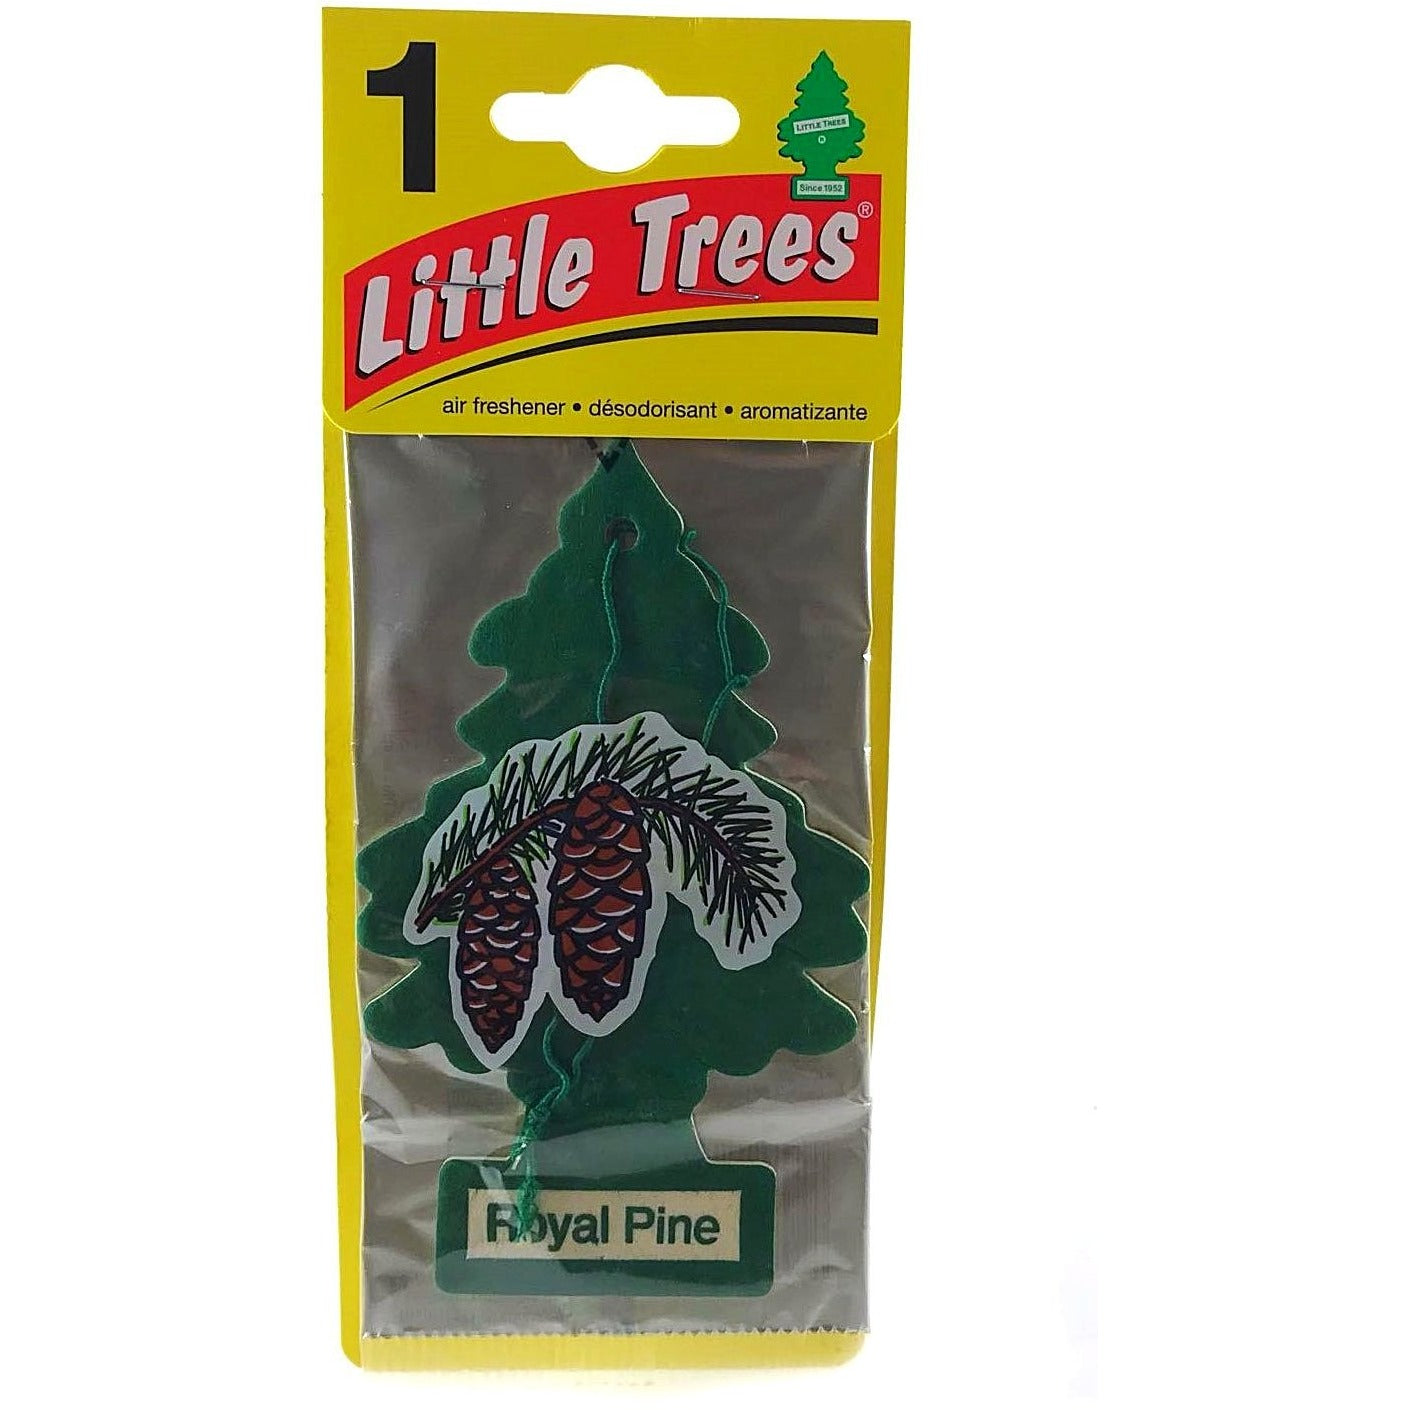 Little Trees Auto Air Freshener - Royal Pine